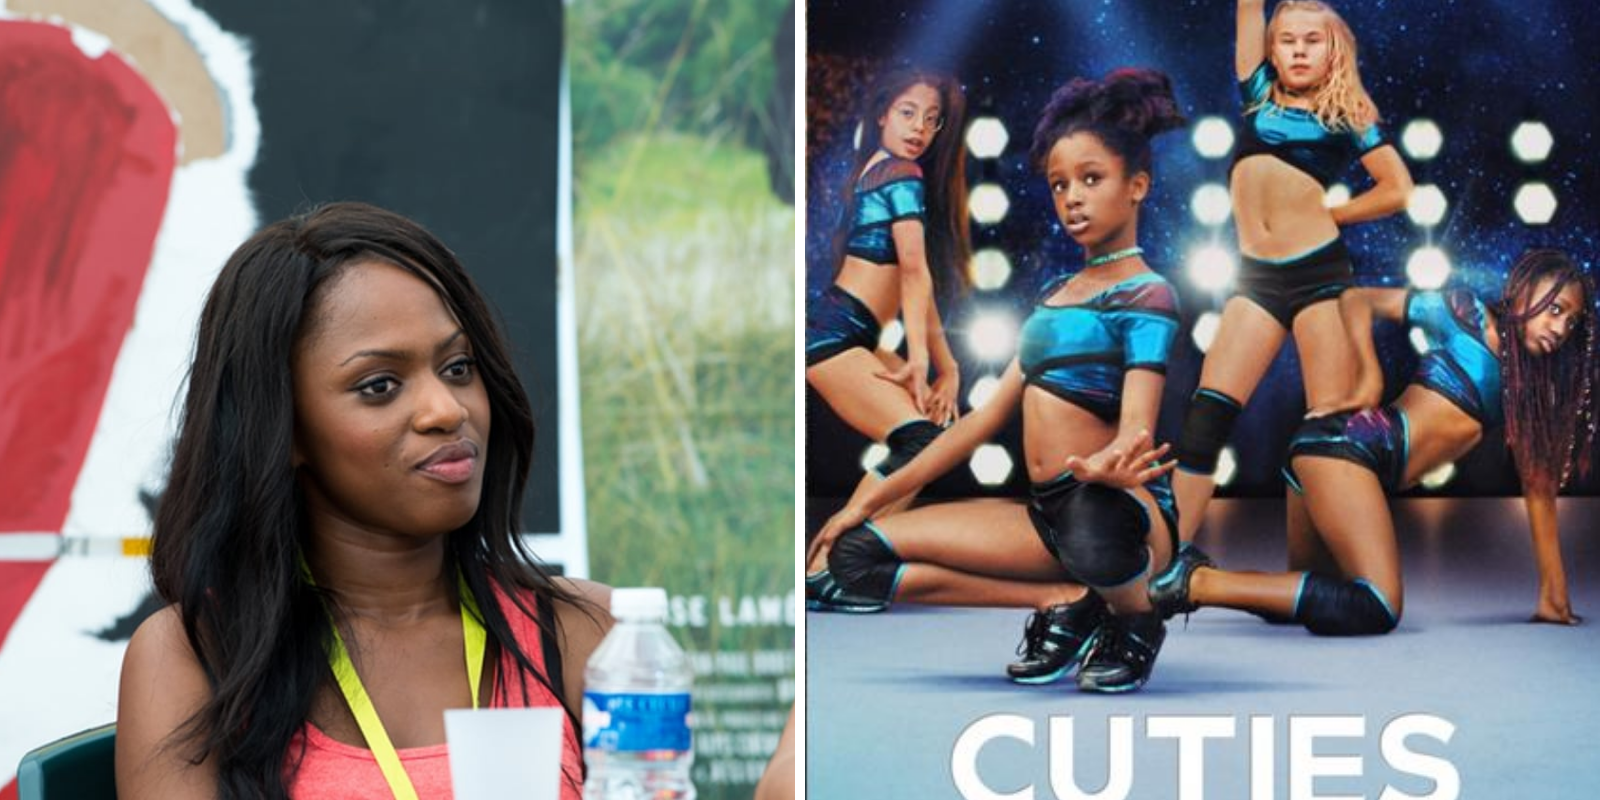 Director defends 'Cuties' film that hyper-sexualizes children by claiming it's 'feminist'